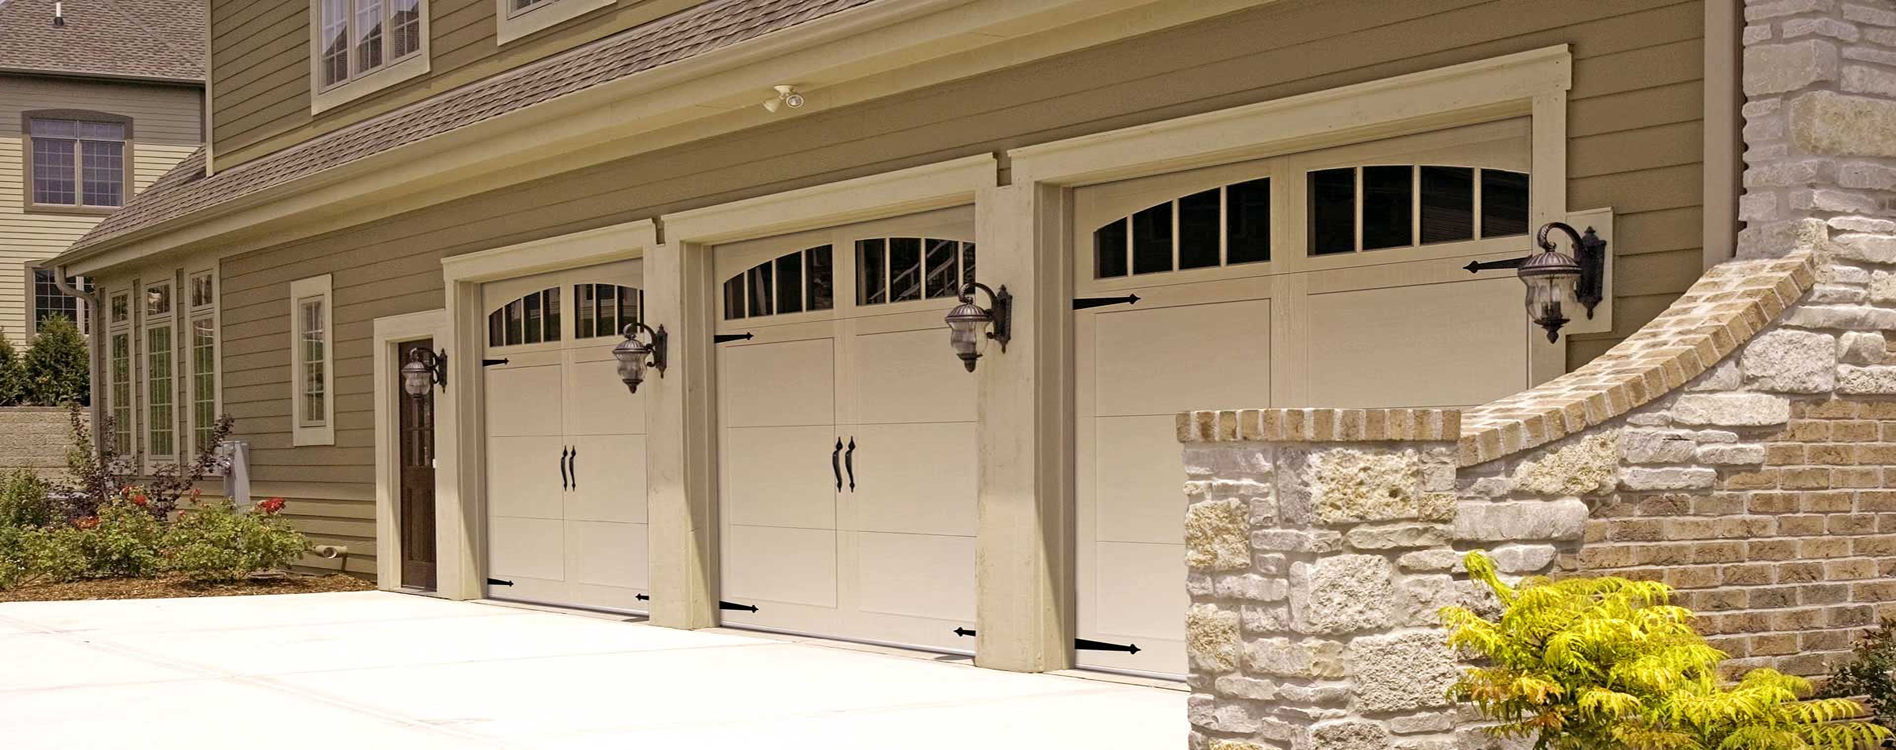 Lilburn Ga Garage Door Repair A Team Garage Door Repairs